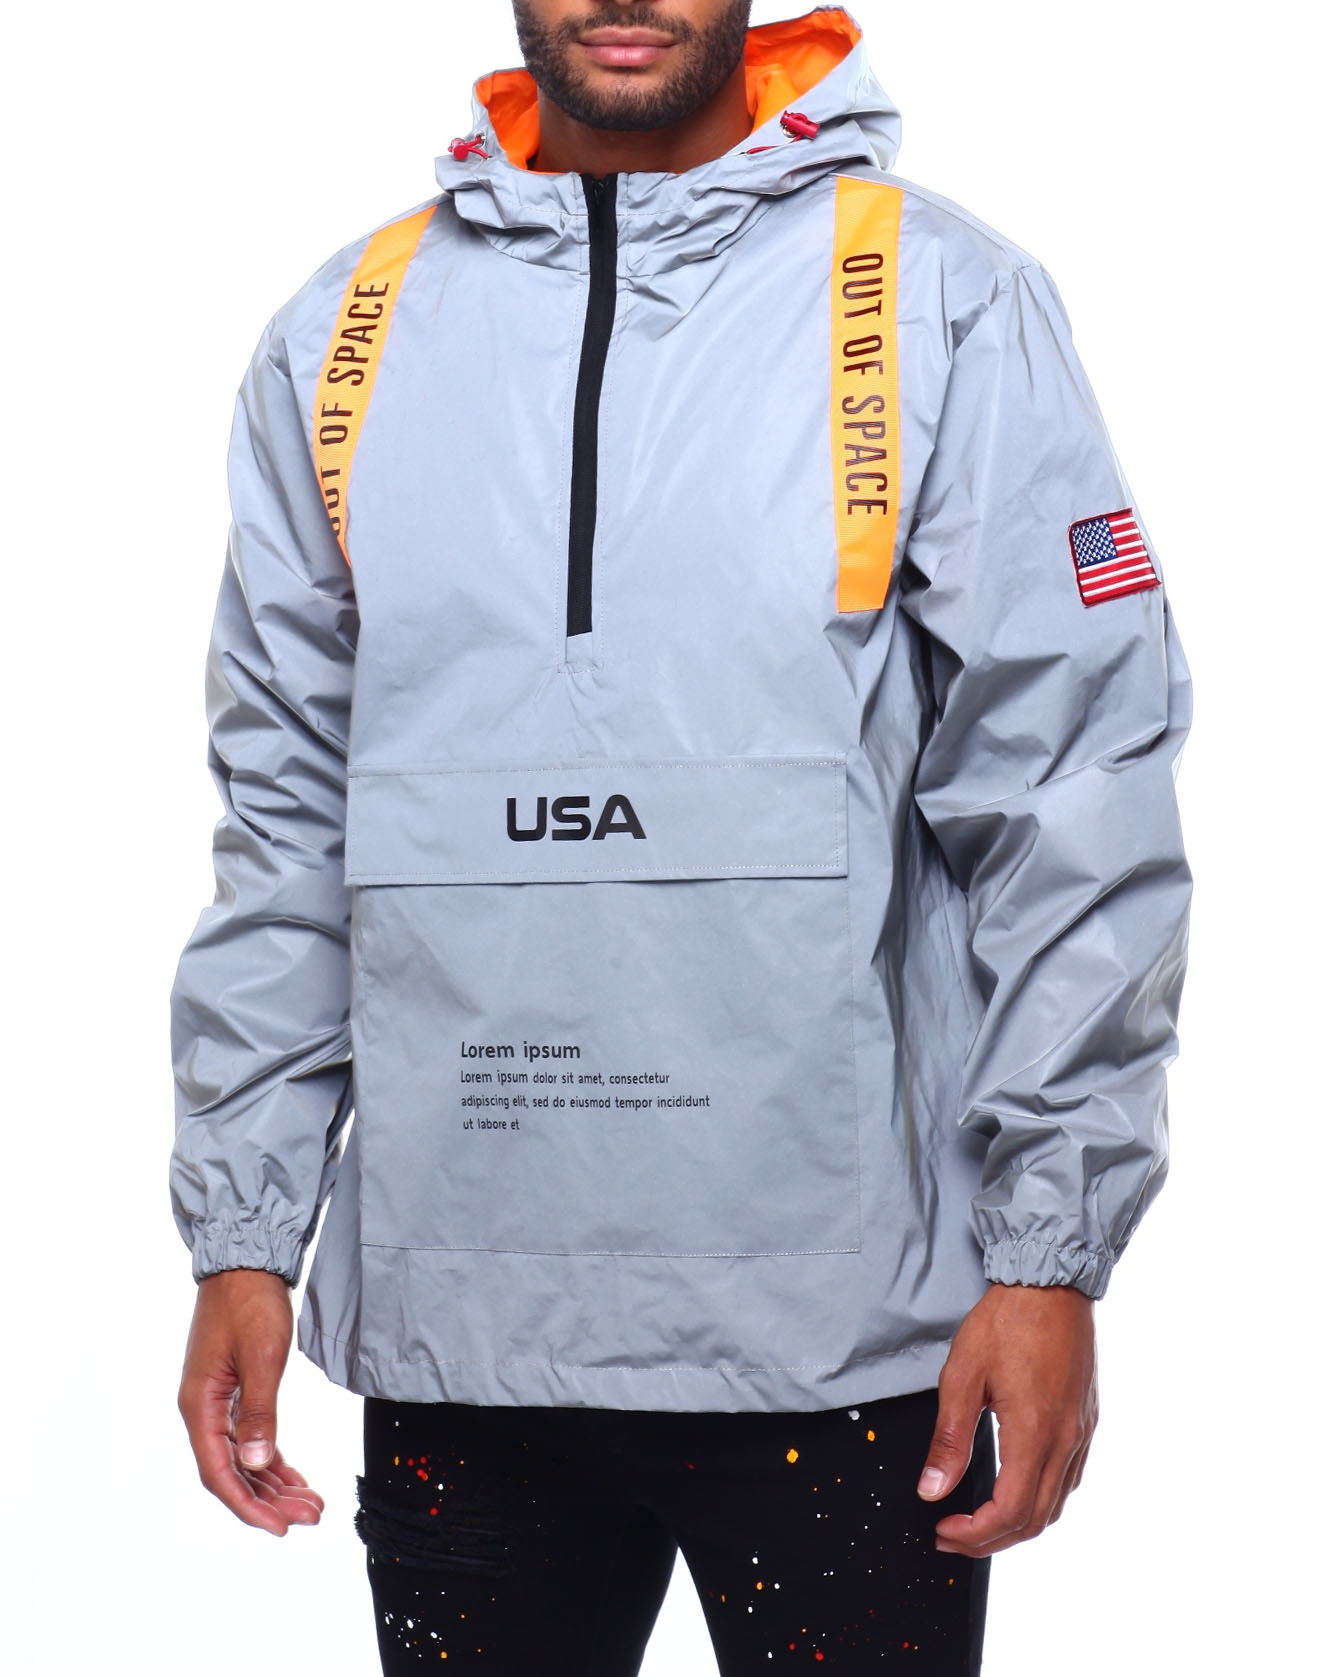 Buy Reflective Space Windbreaker Outerwear from Buyers Picks